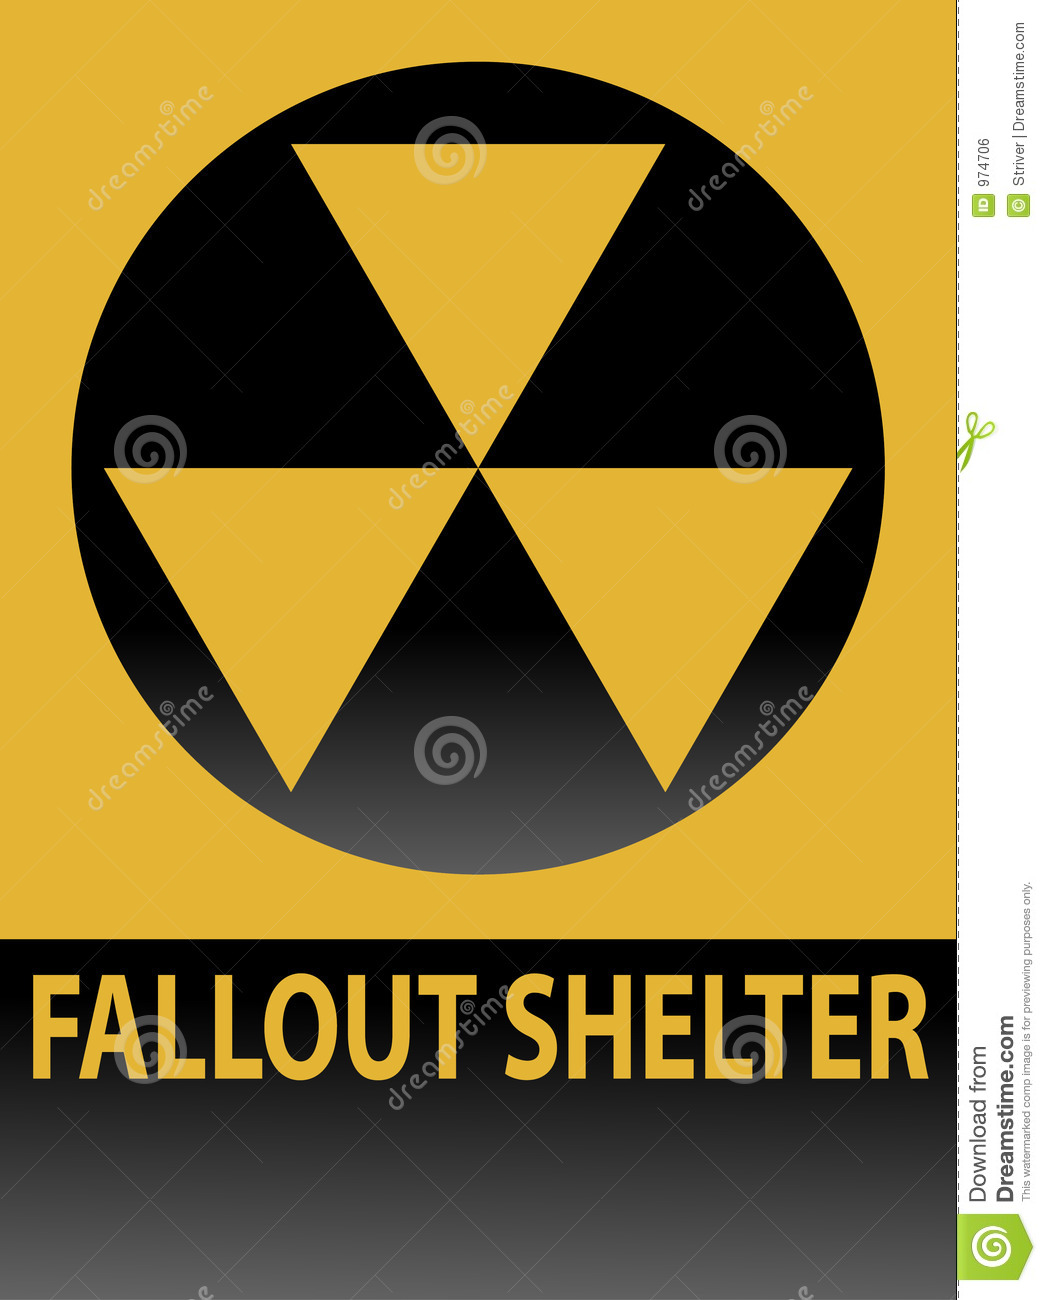 Sign panda free images. Shelter clipart fallout shelter picture free